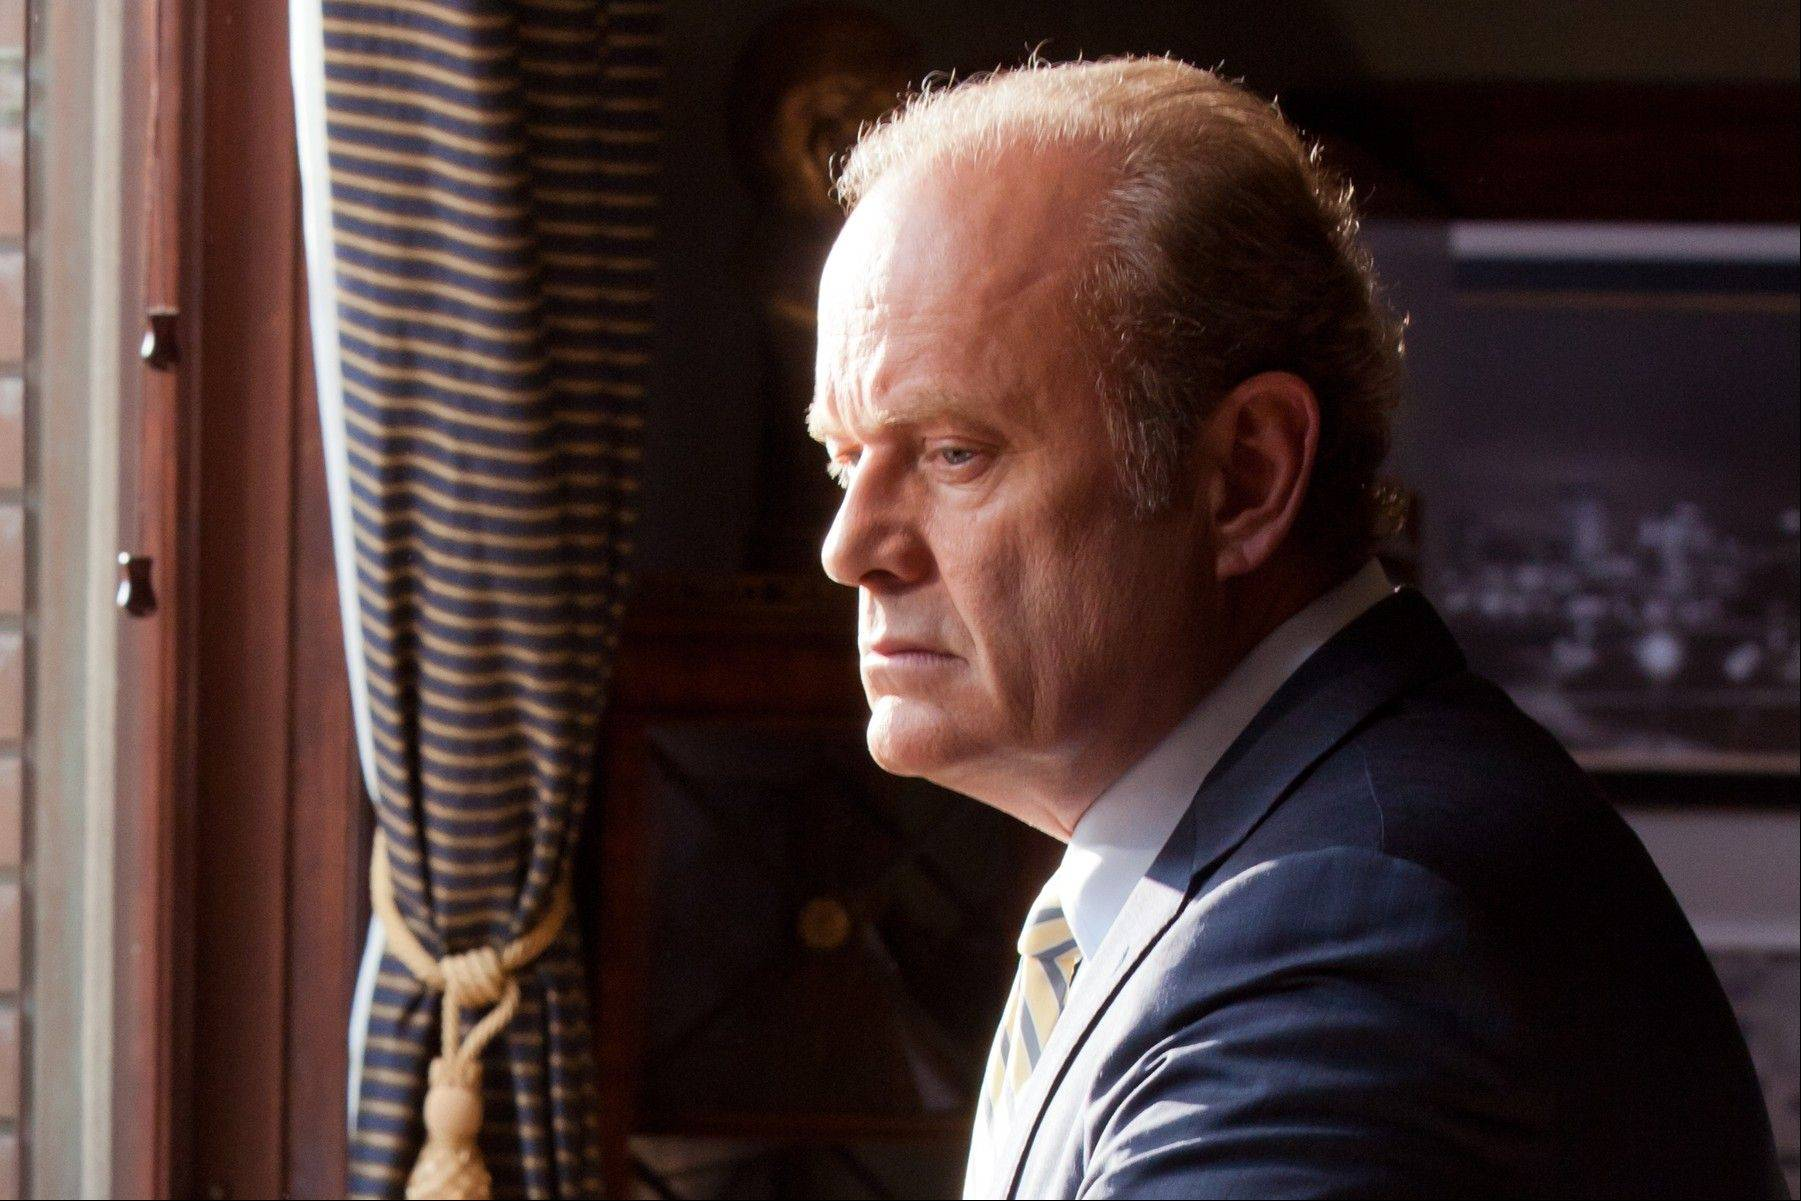 The Starz series �Boss,� starring Kelsey Grammer who plays Mayor Tom Kane, will not be returning for a third season.